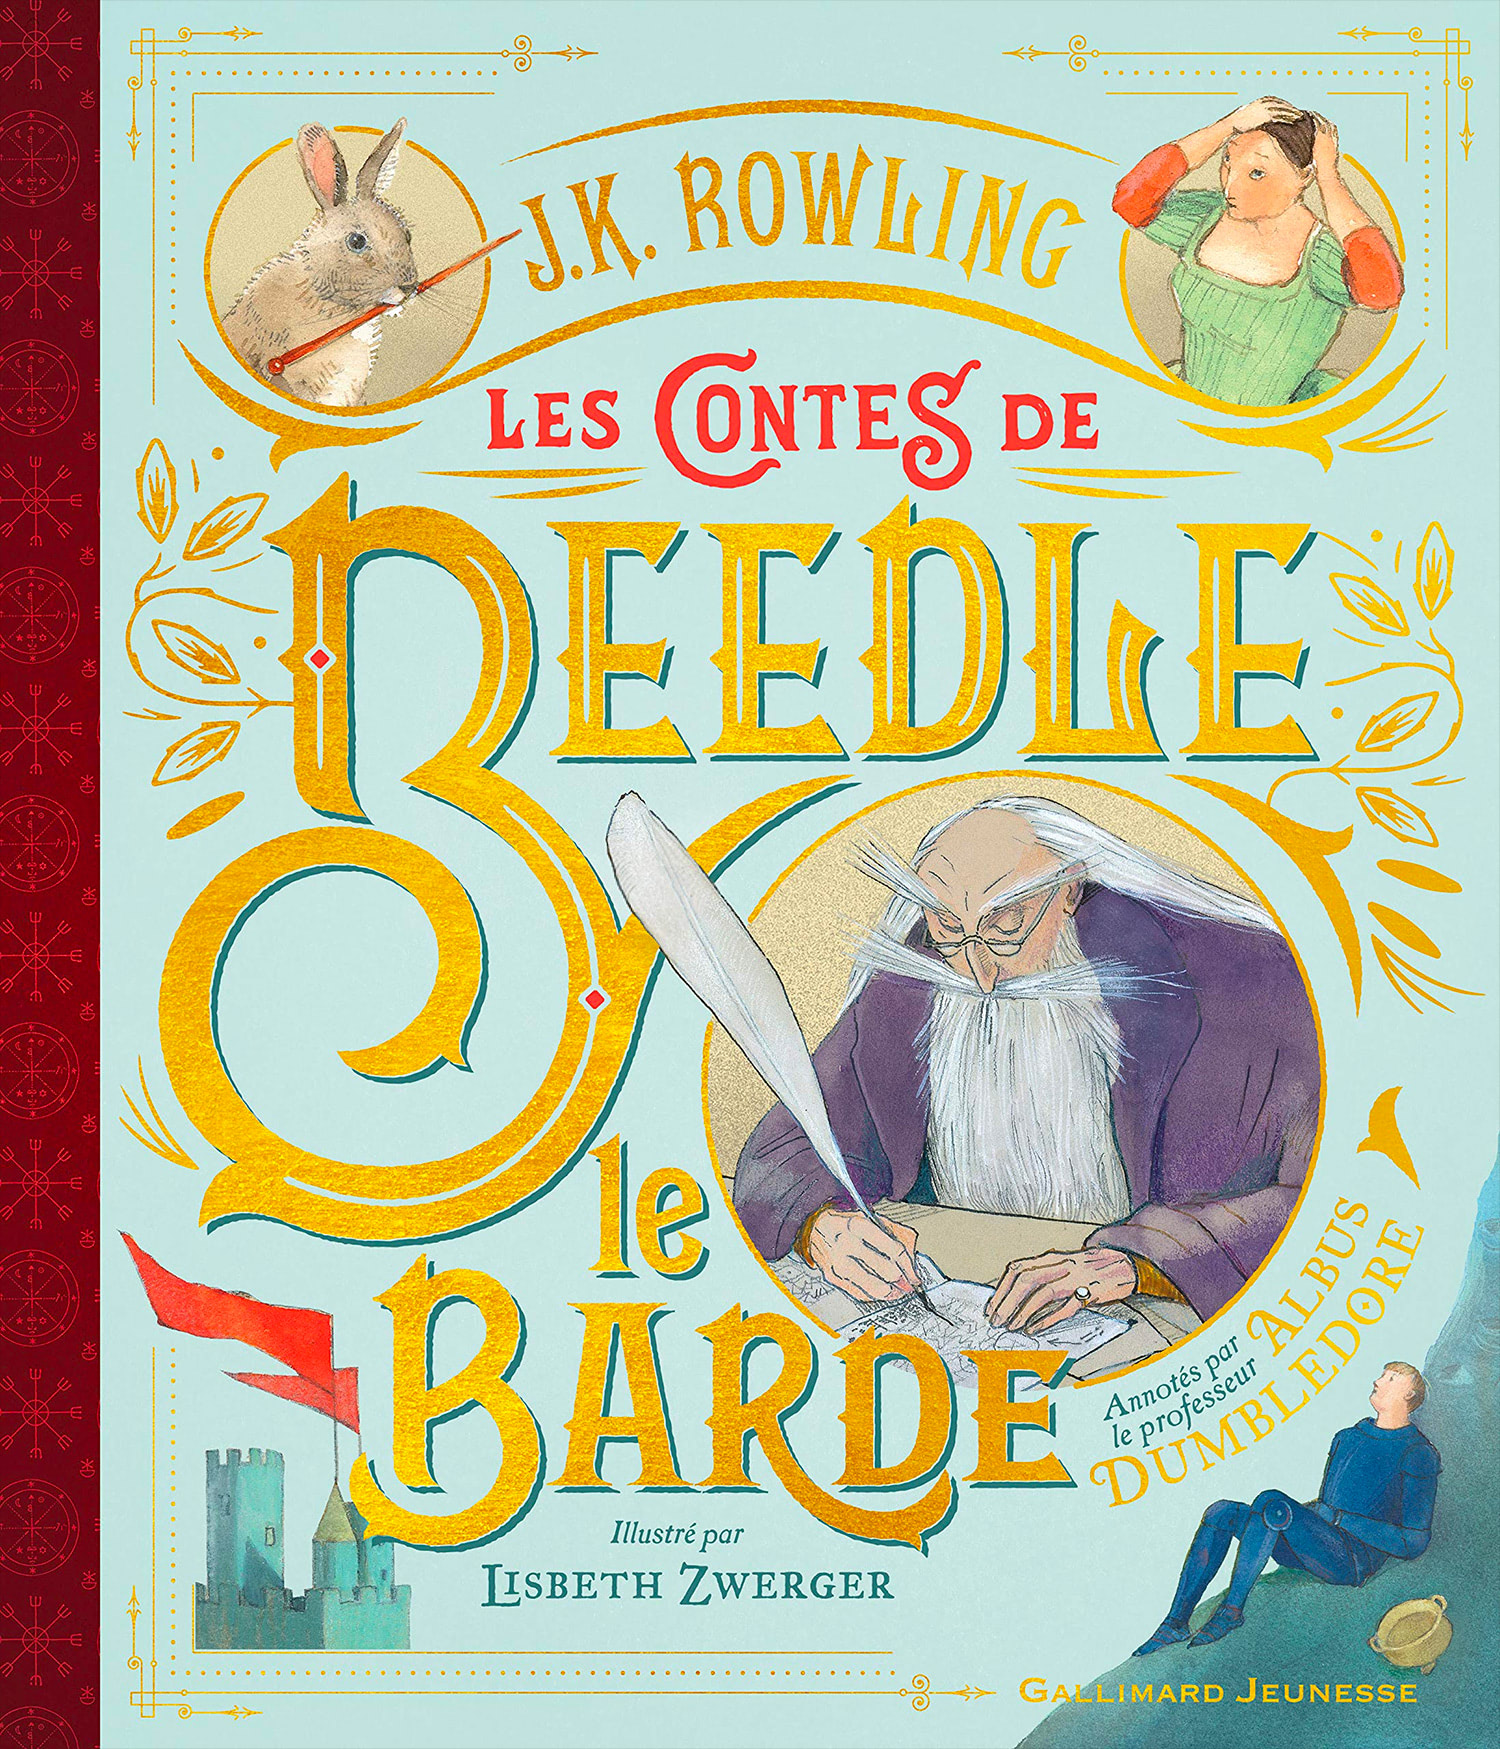 'Beedle the Bard' illustrated edition (French cover)